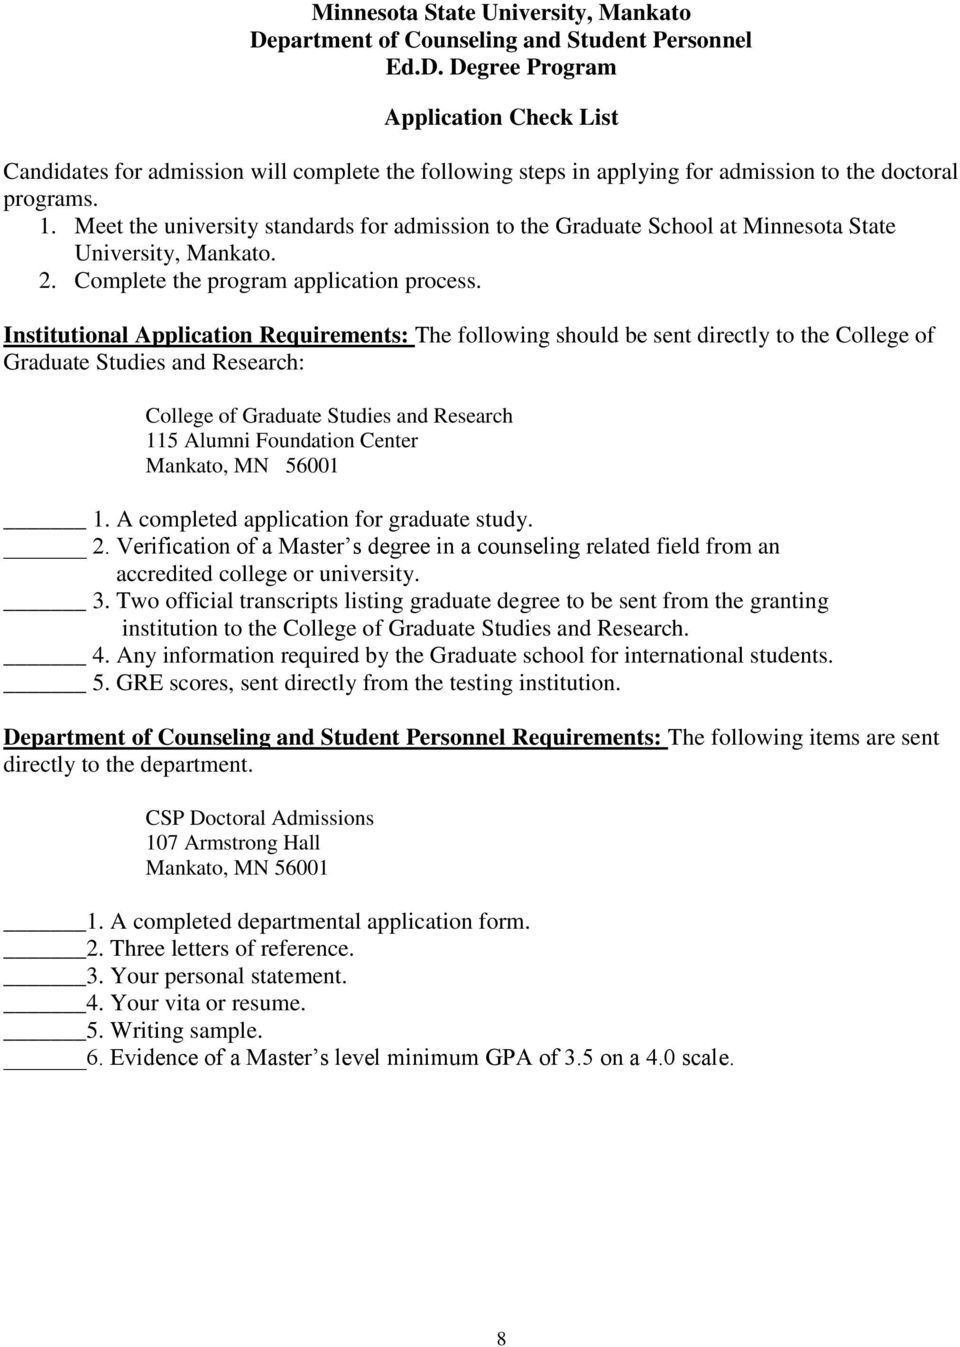 Institutional Application Requirements: The following should be sent directly to the College of Graduate Studies and Research: College of Graduate Studies and Research 115 Alumni Foundation Center